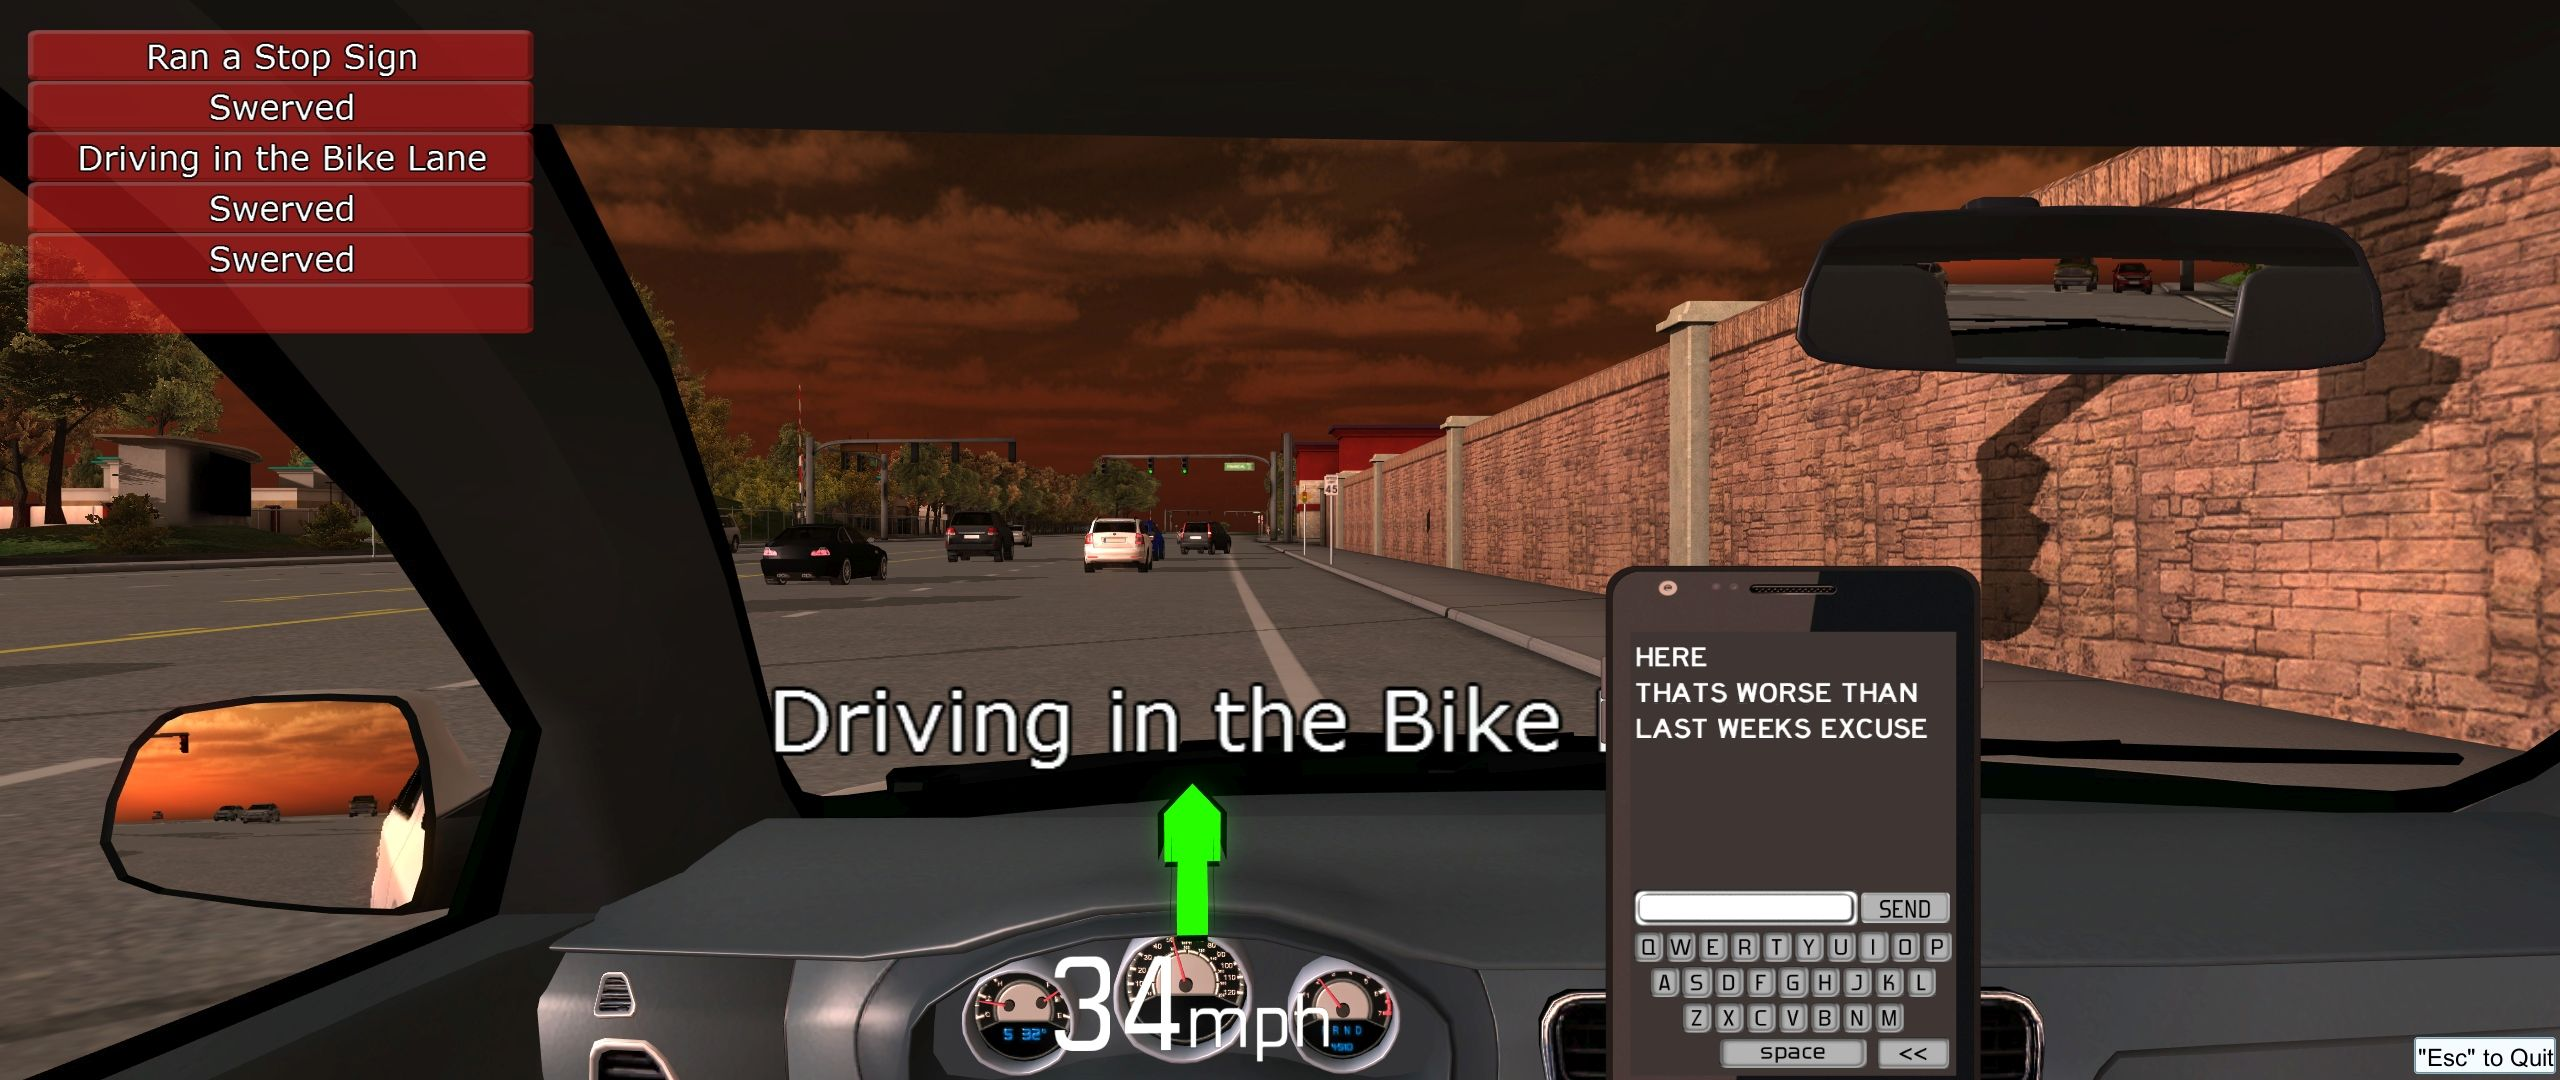 Virtual Driver Interactive Outreach Programs Promote Driver Safety